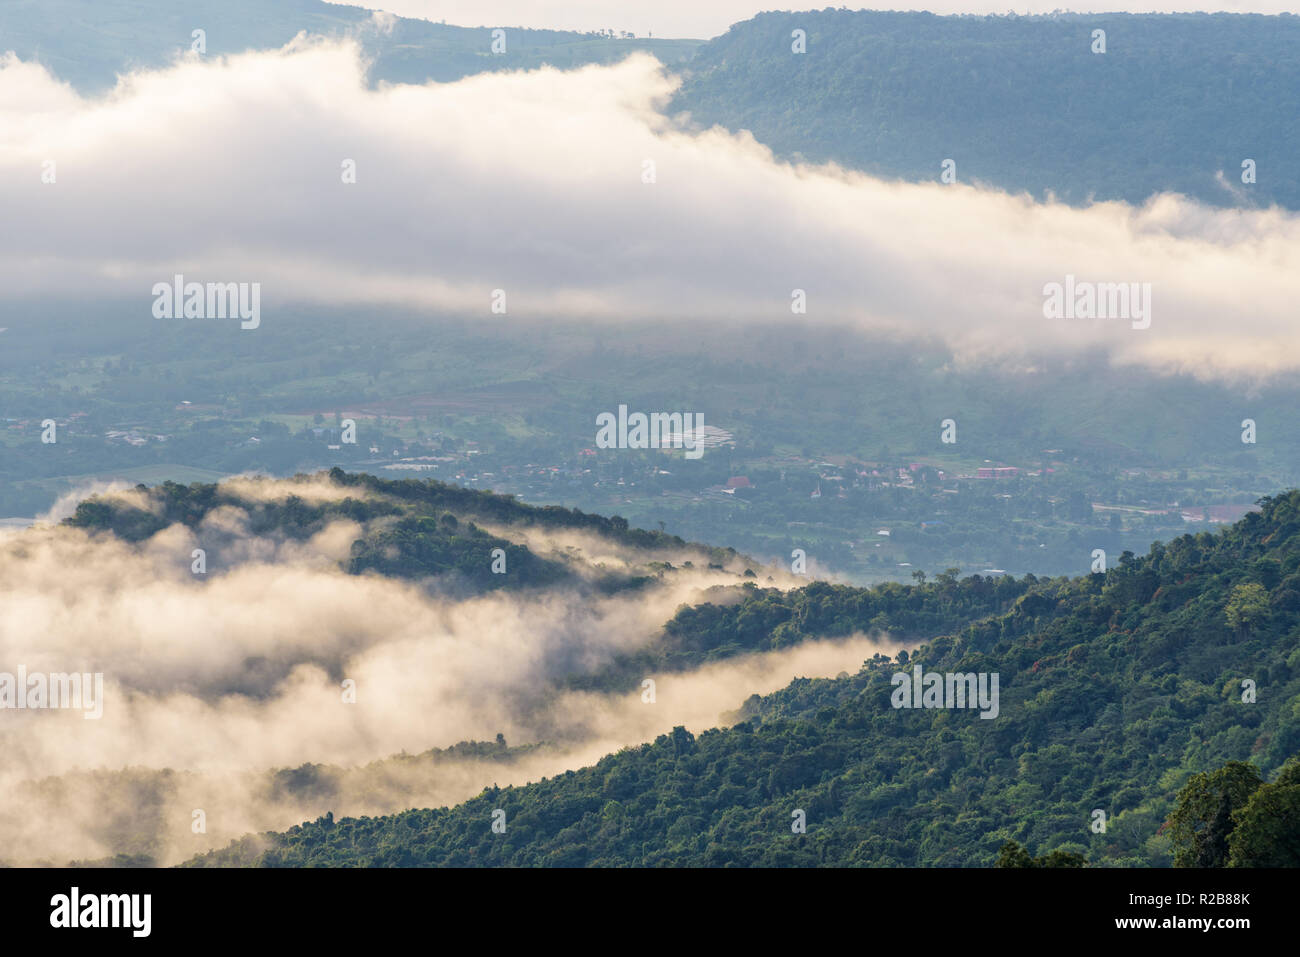 Beautiful nature landscape clouds and fogs like the sea is covered peaks in winter morning during sunrise at viewpoint of Phu Ruea National Park, Loei - Stock Image